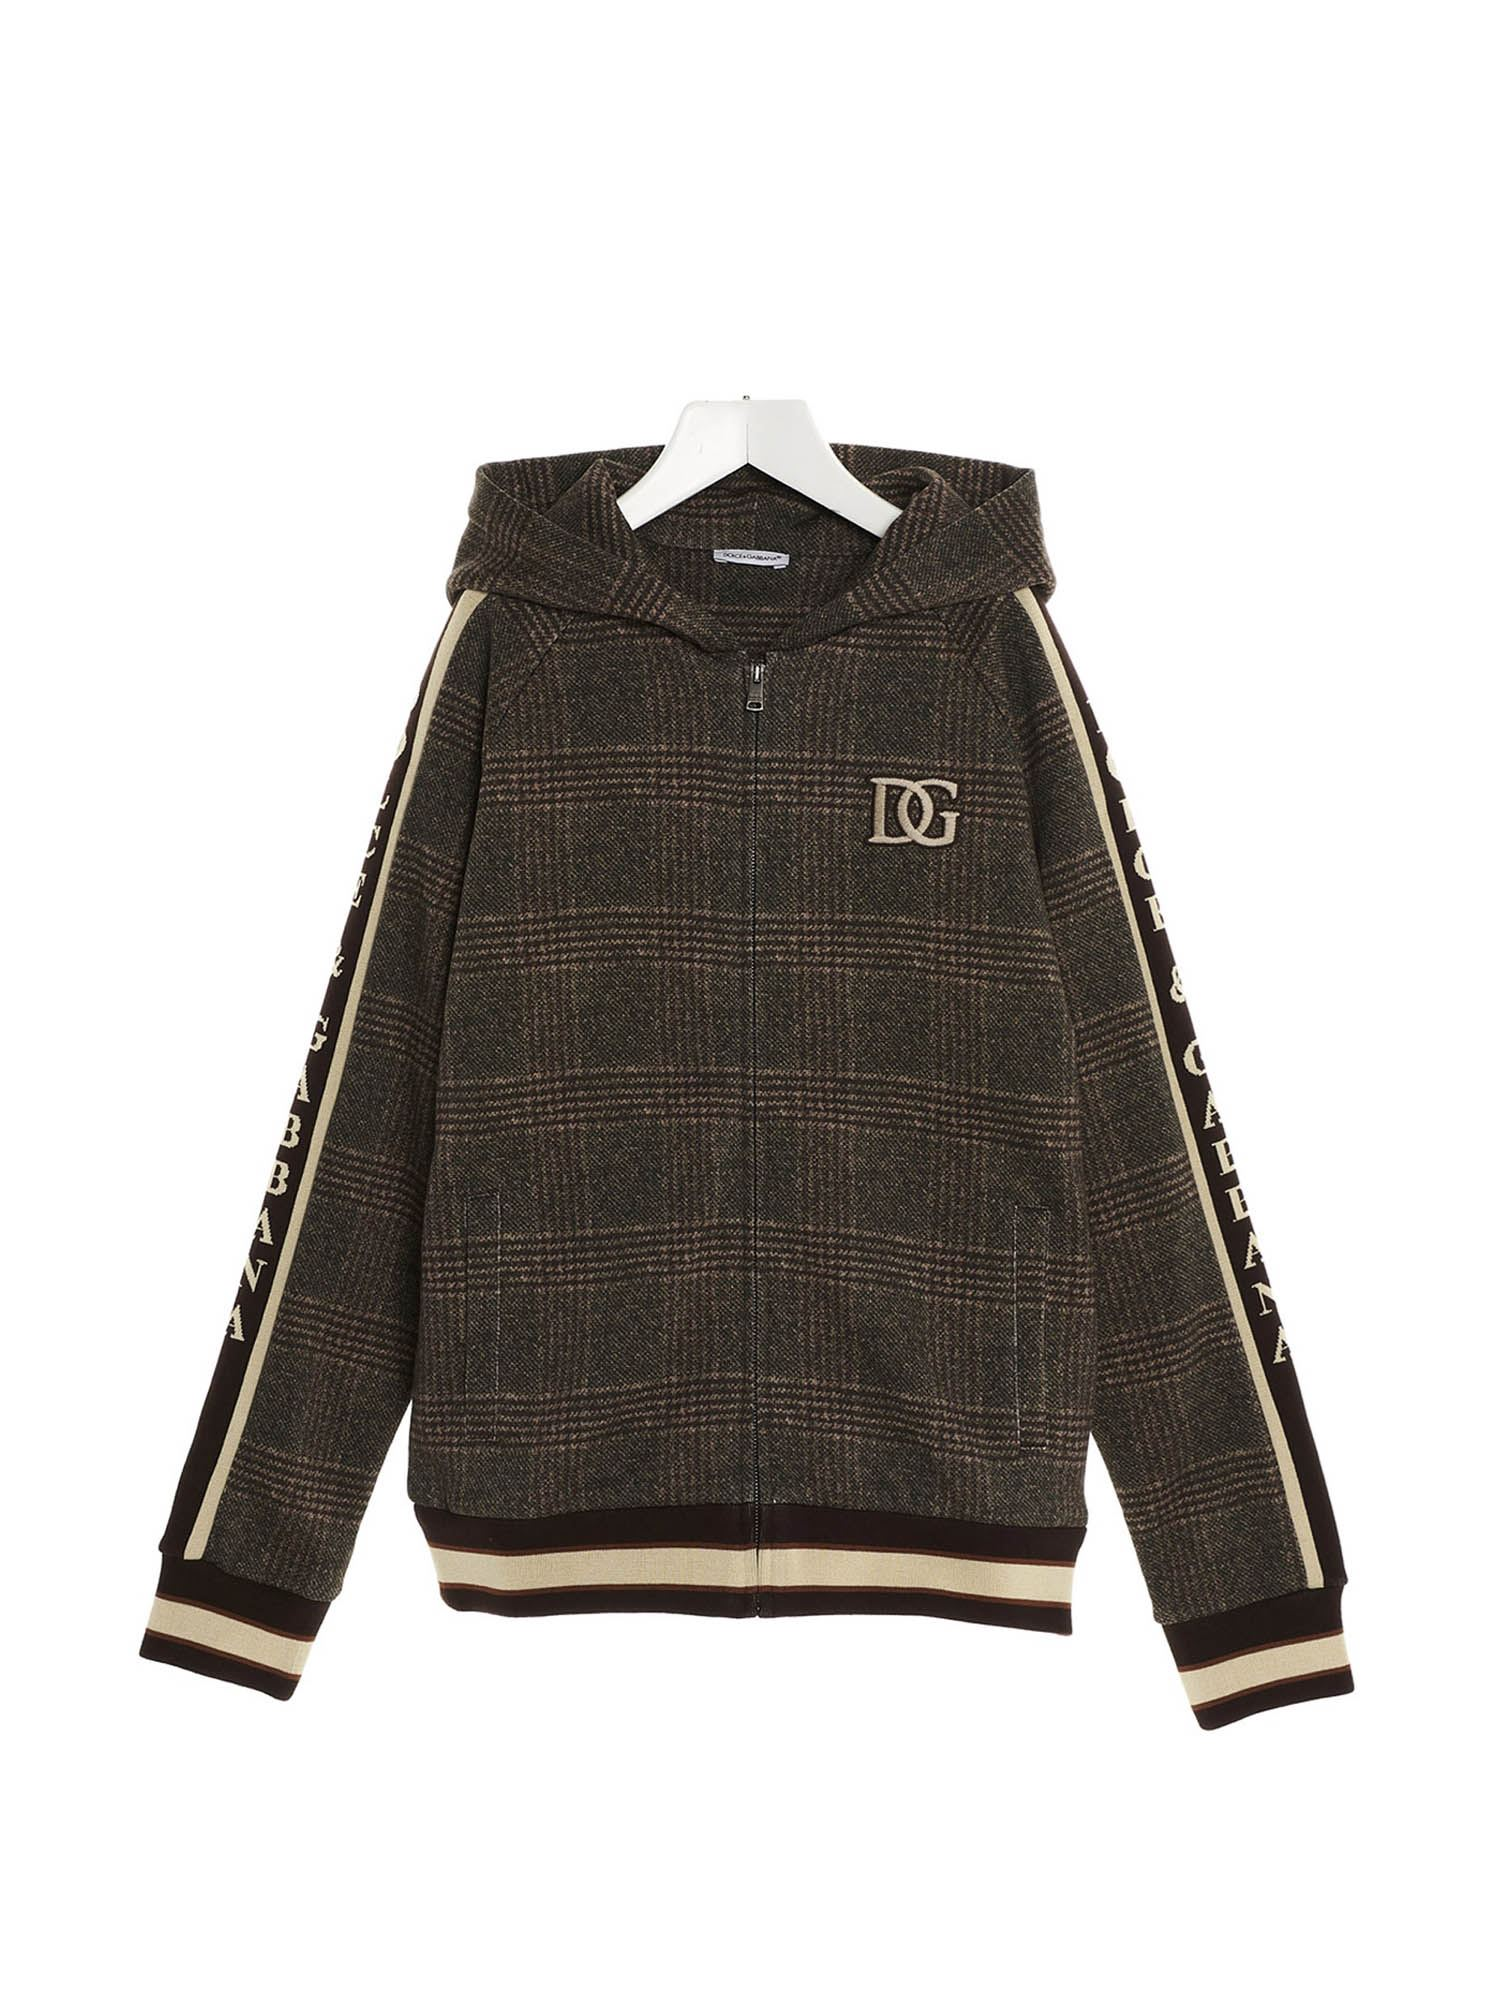 Dolce & Gabbana Jr DG CHECKED SWEATSHIRT WITH ZIP IN BROWN